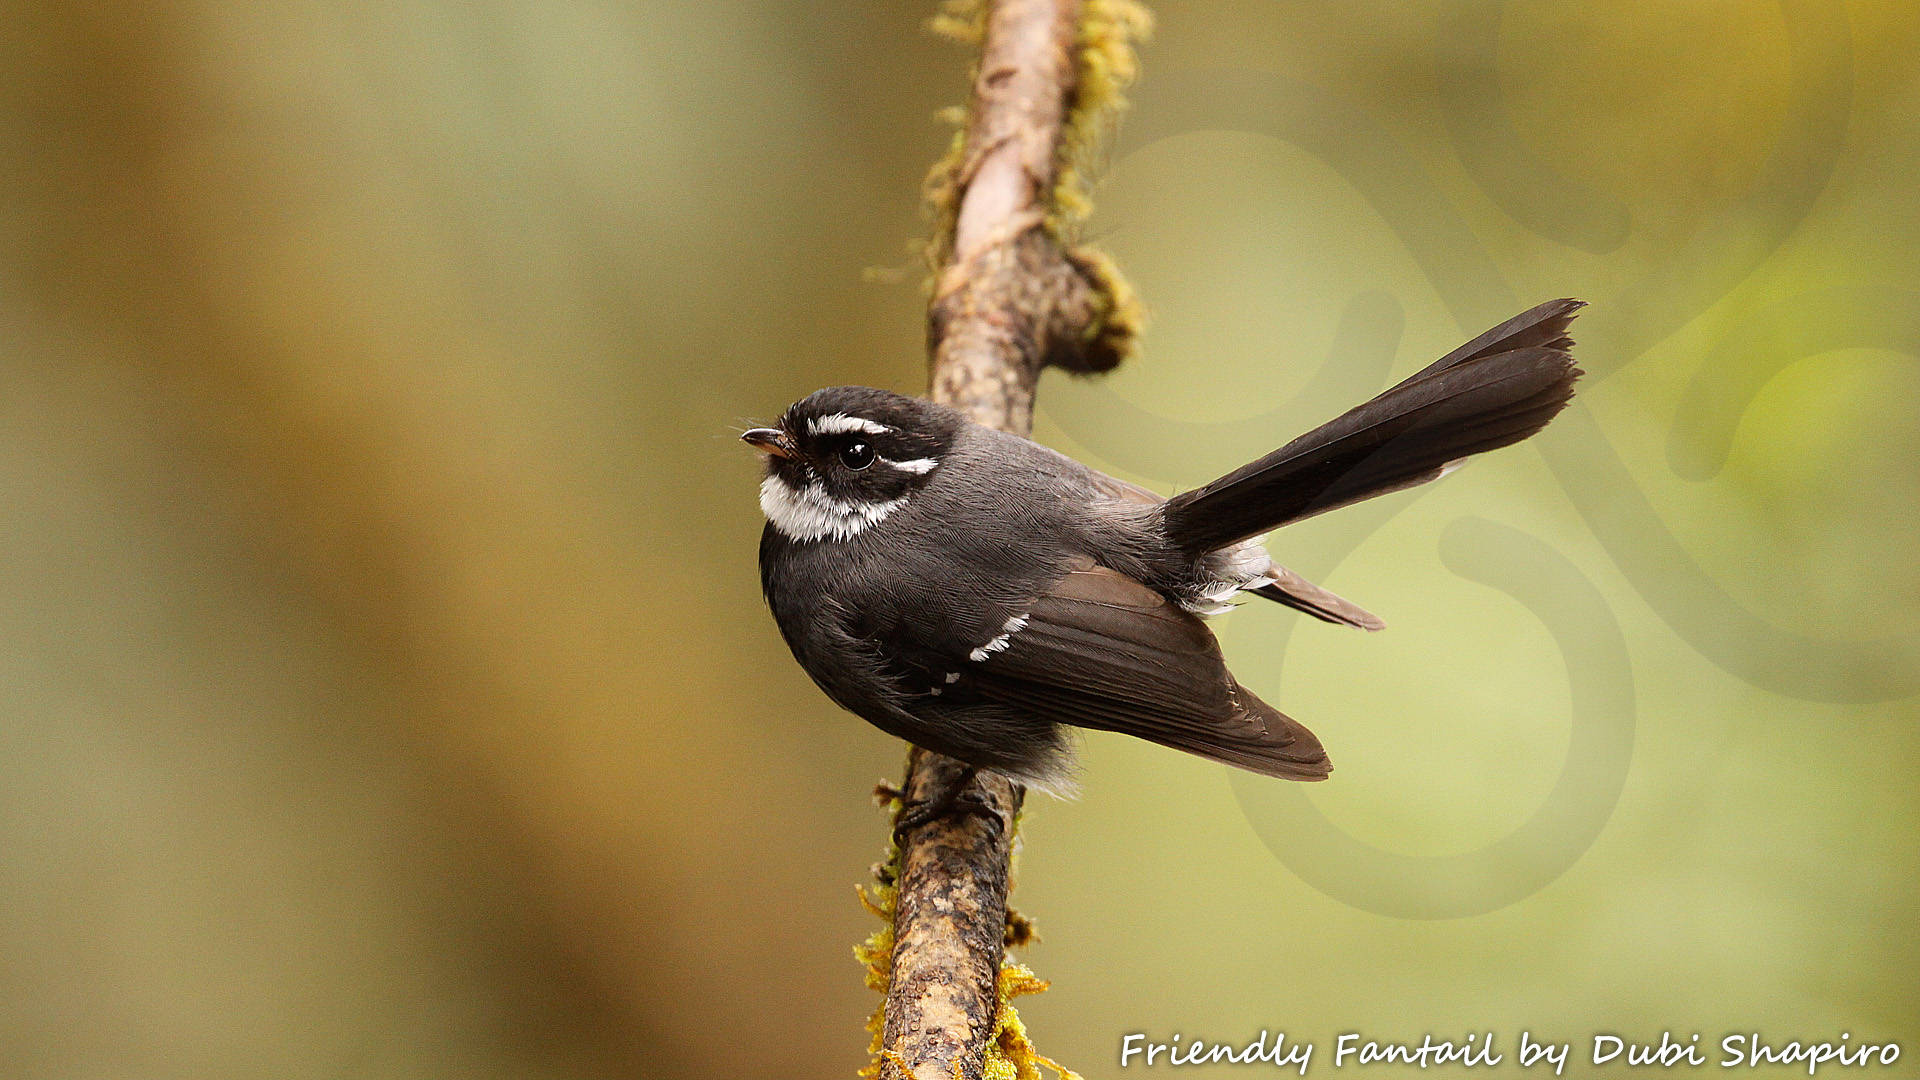 Friendly Fantail Rhipidura albolimbata occurs throughout the mountains of New Guinea. Copyright © Dubi Shapiro